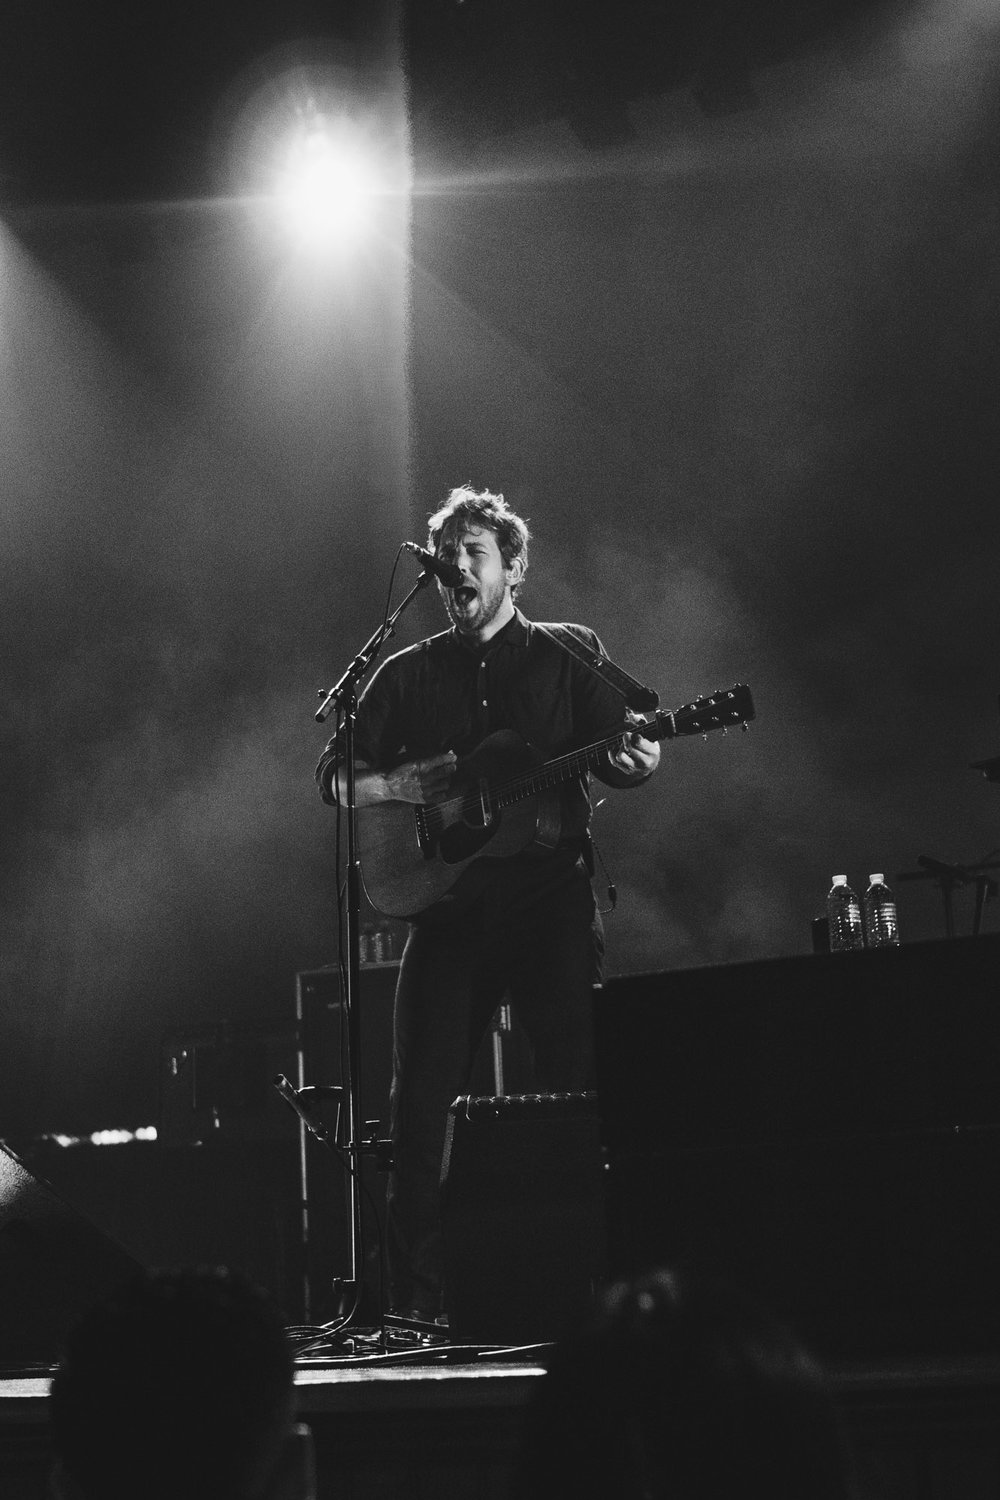 Fleet Foxes - Britton Strickland (10 of 16).jpg